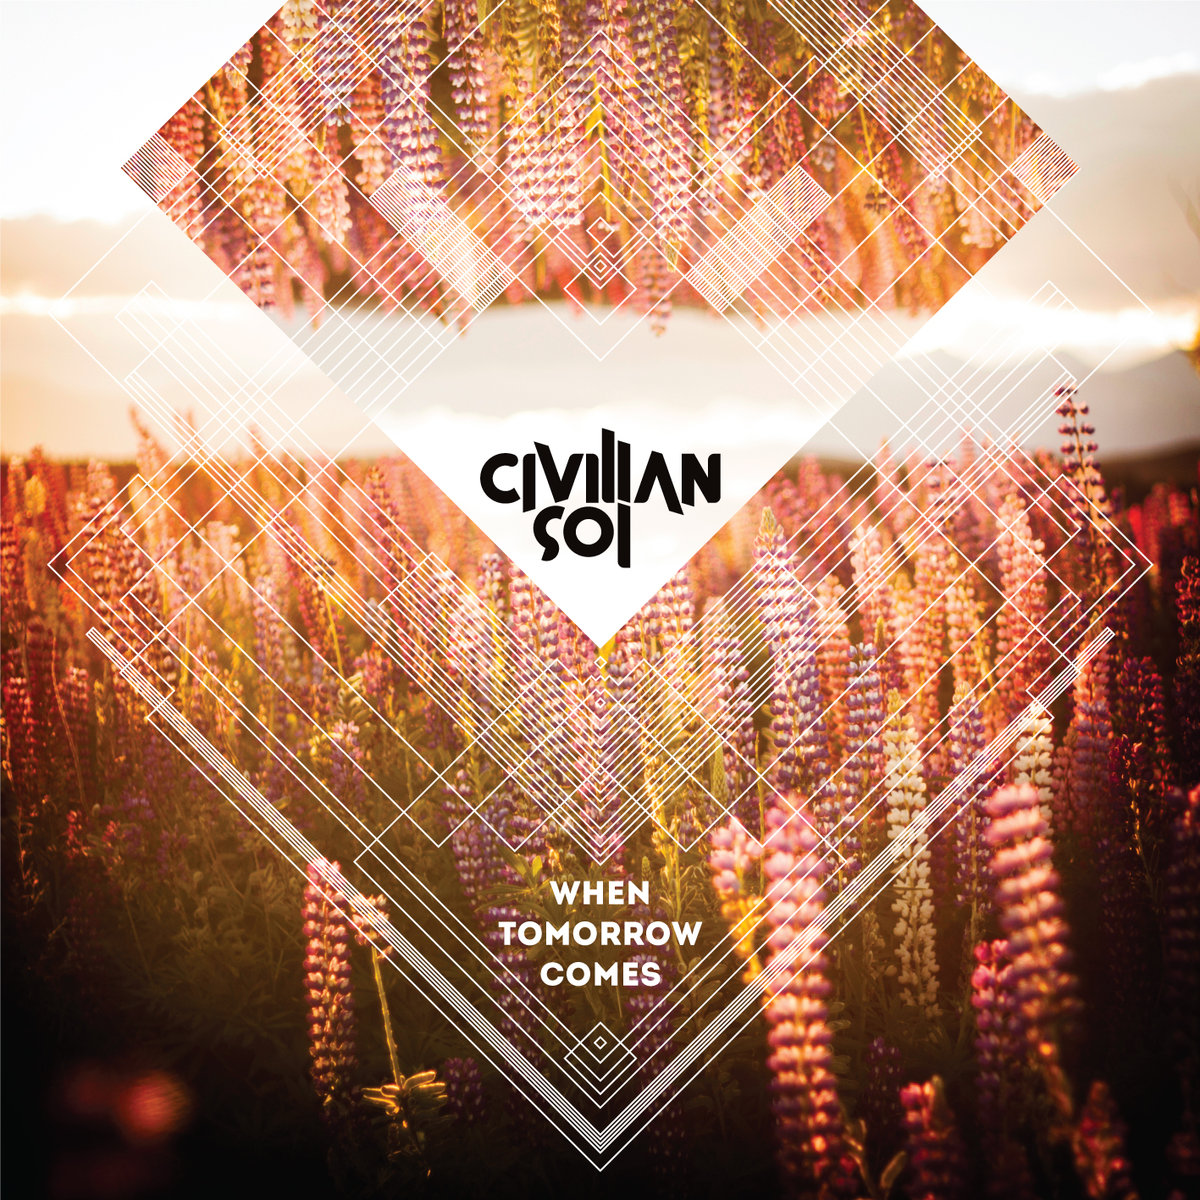 Civilian Sol - When Tomorrow Comes @ 'When Tomorrow Comes' album (Austin)